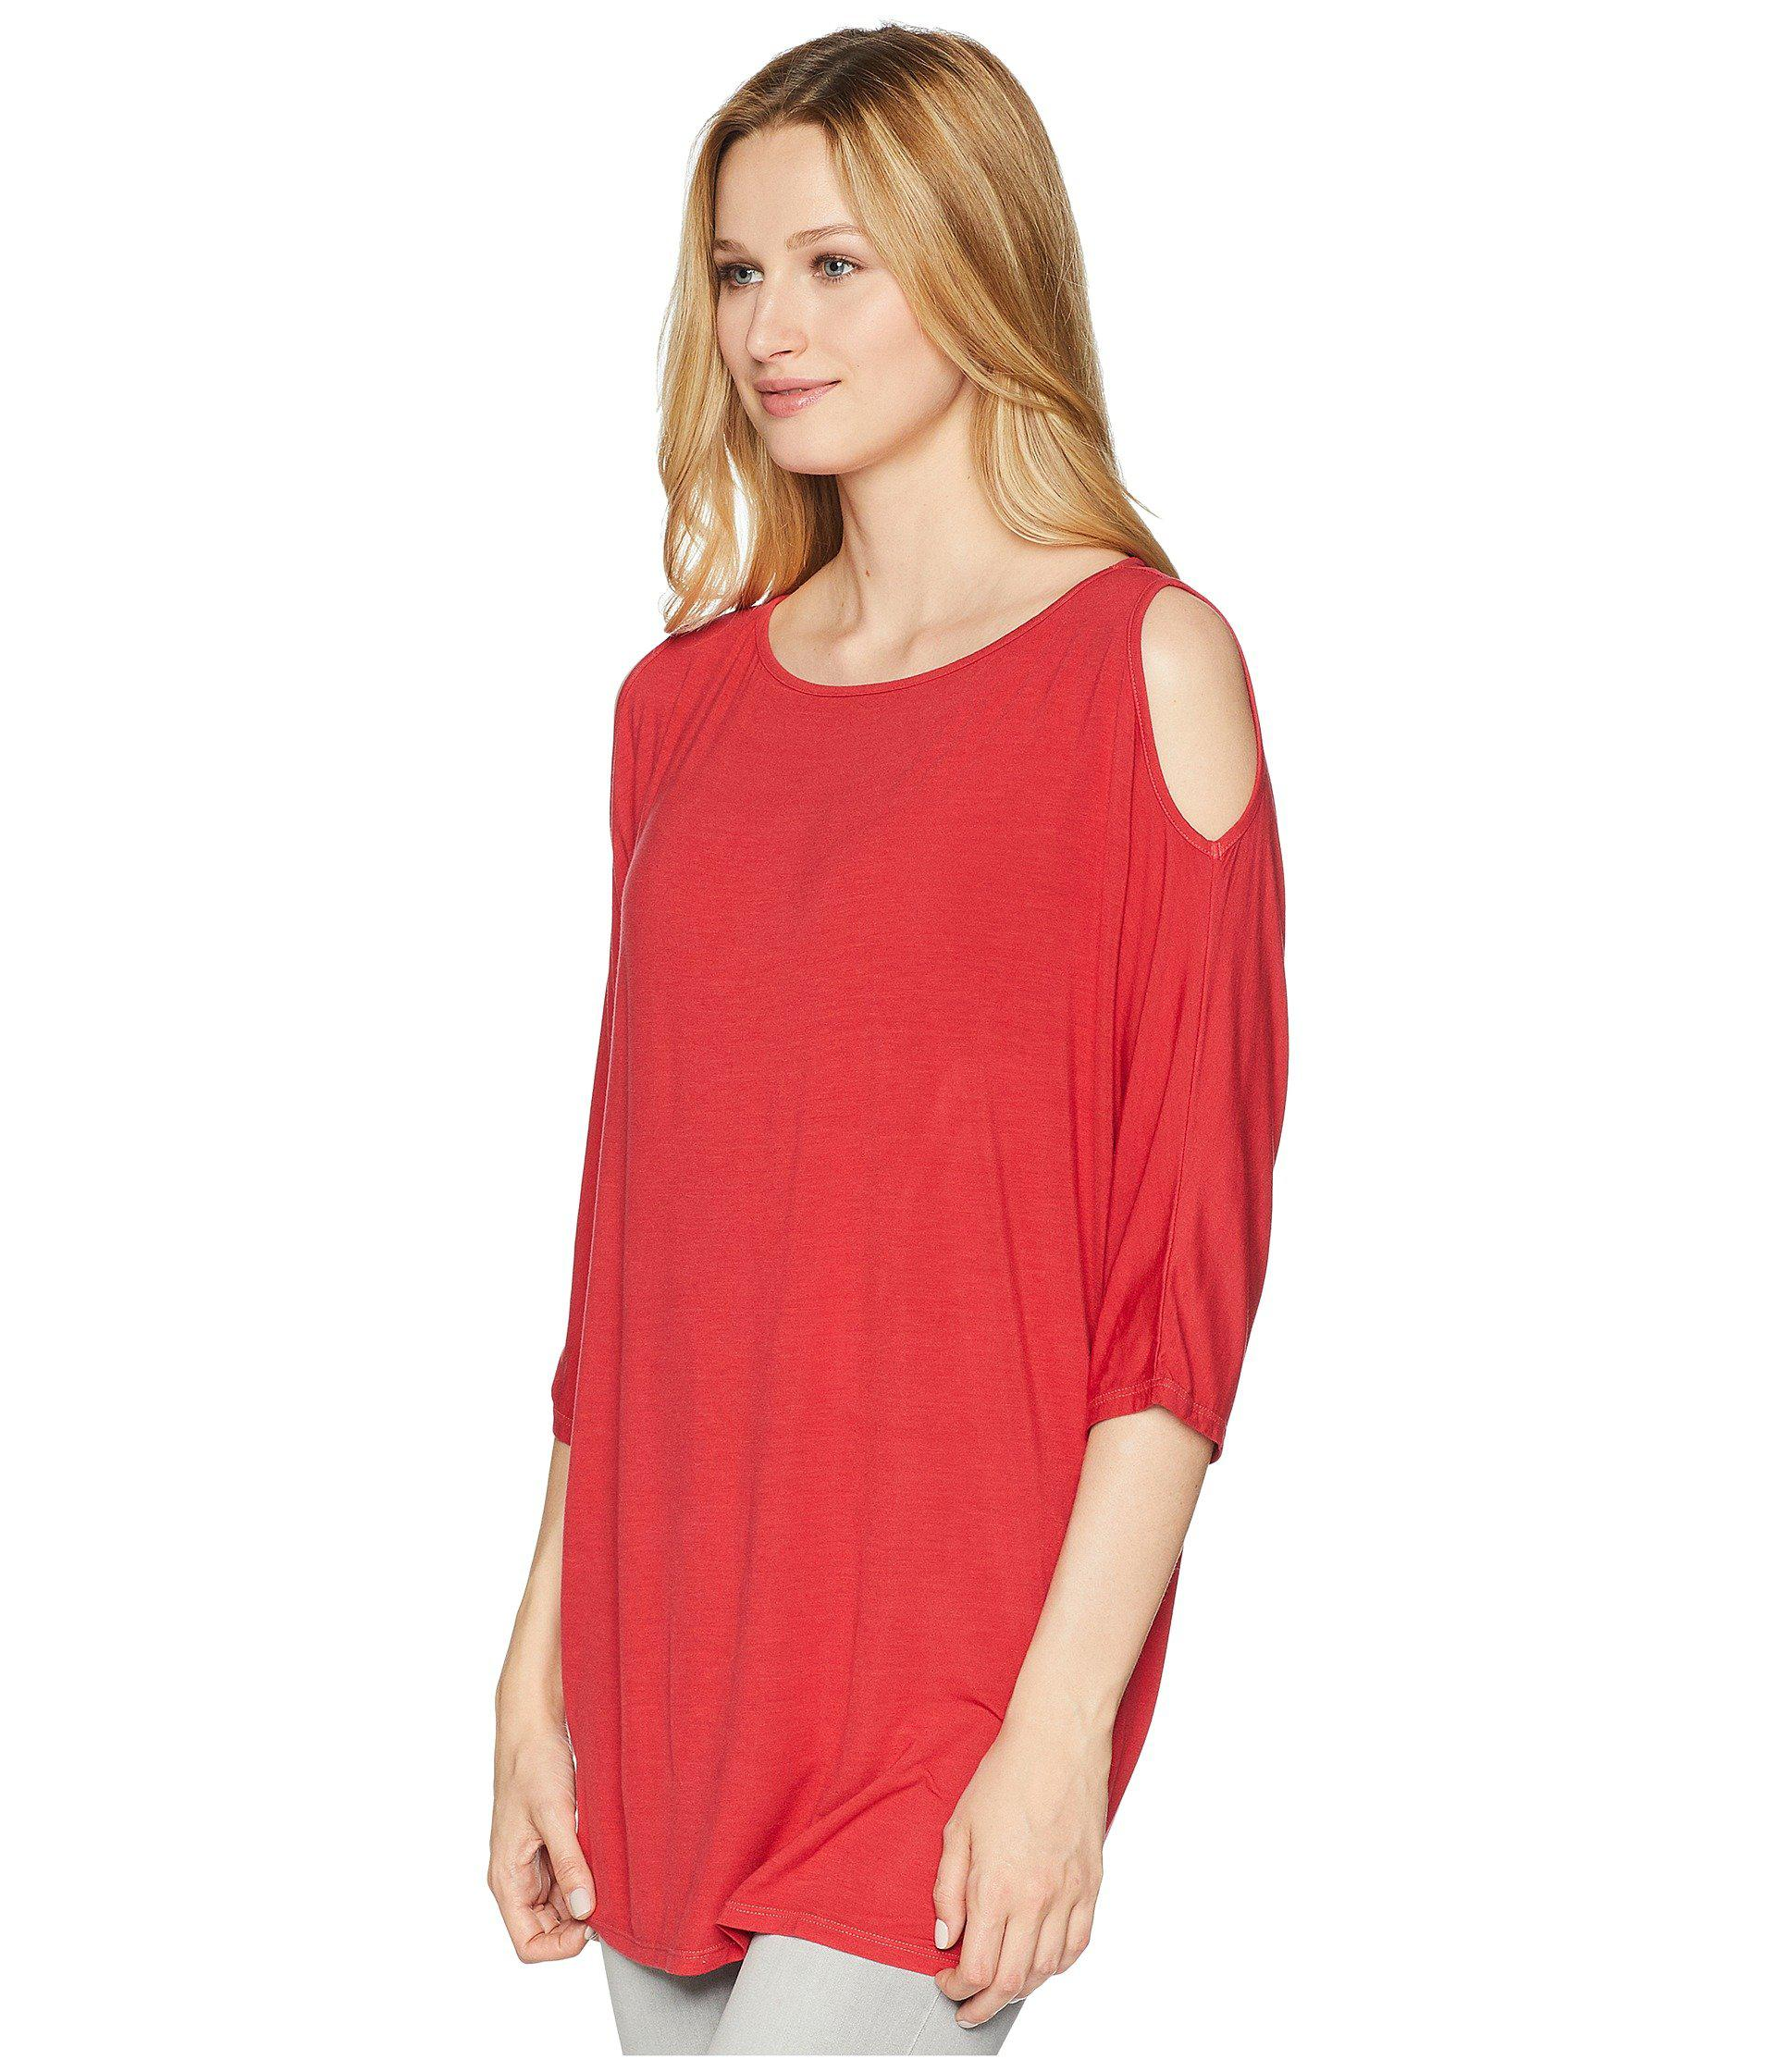 e450443fcbf82 Lyst - Michael Stars Lycra Jersey 3 4 Sleeve Cold Shoulder Tunic in Red -  Save 20%